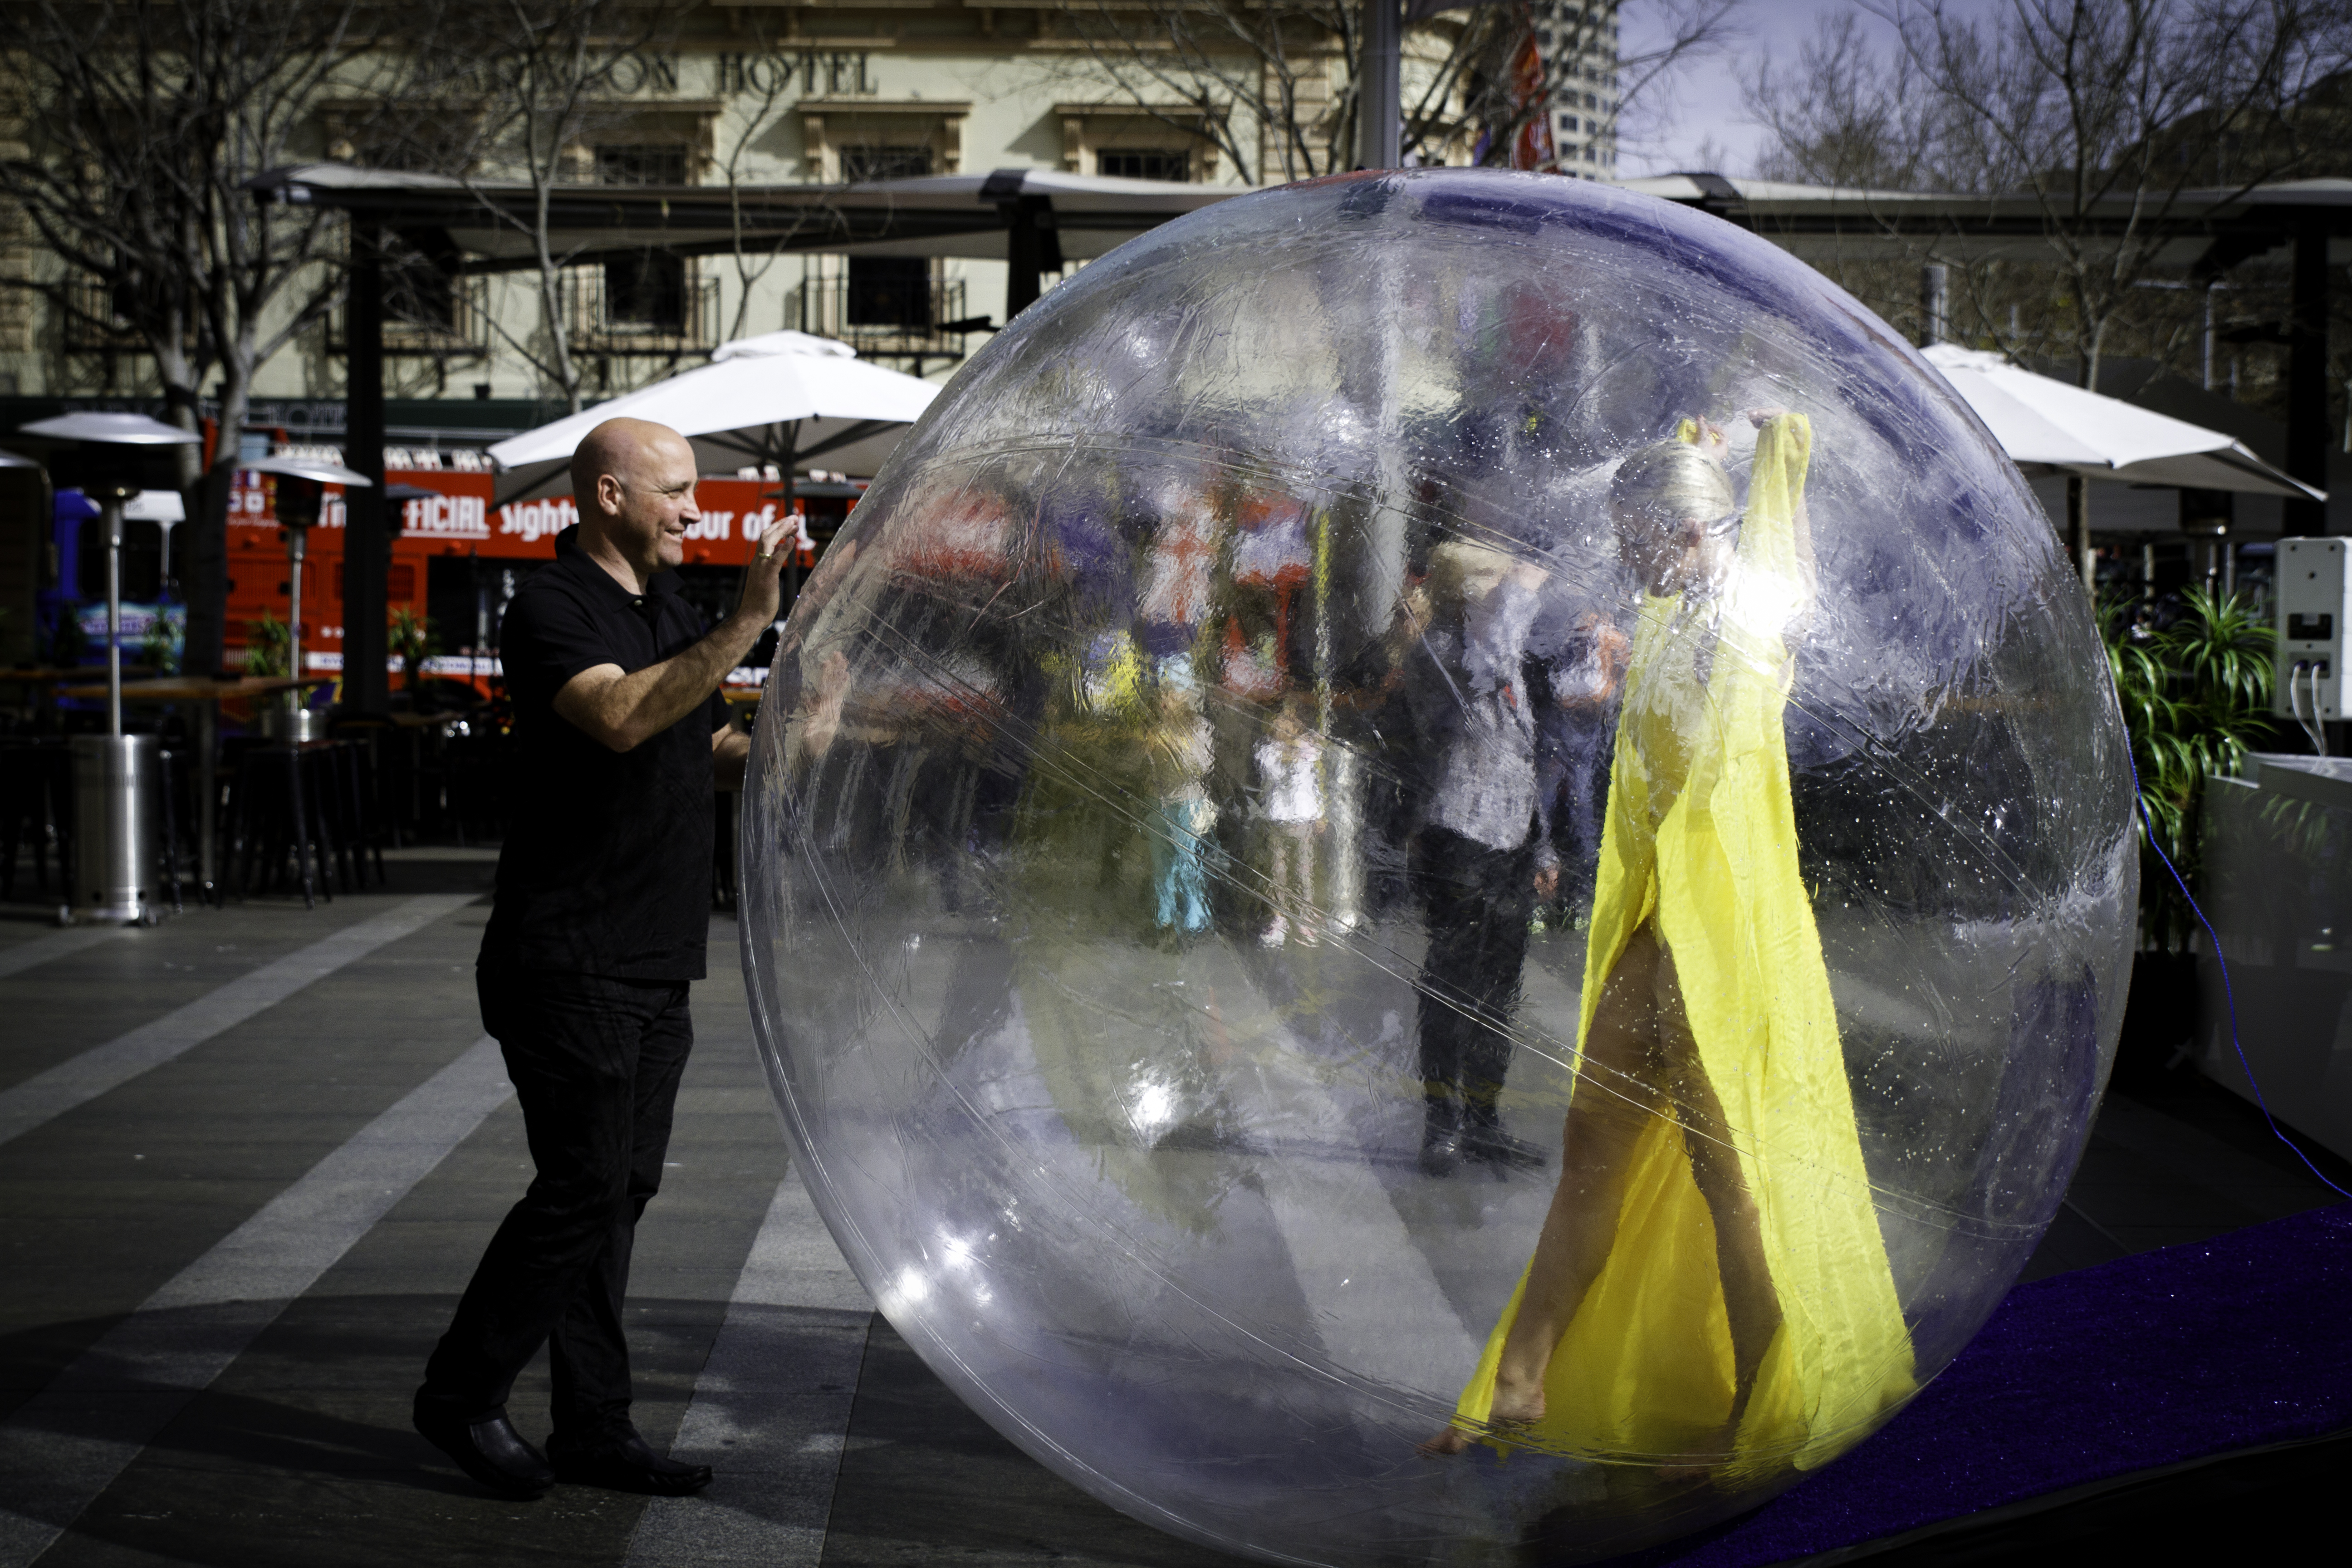 Beauty kept in a bubble | facespeoplelivein Quarantine Bubble